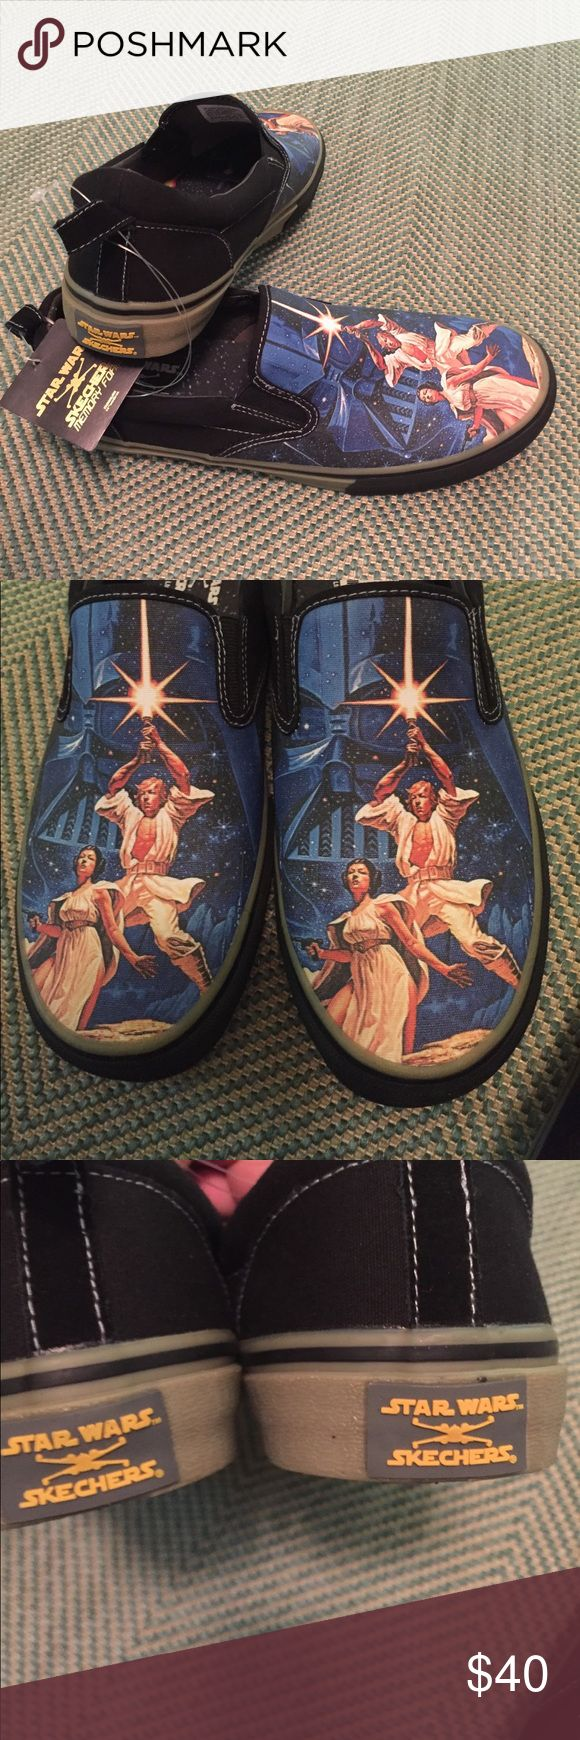 NWT Star Wars Memory Foam Skechers Shoes 9,9.5,10 Men's Skechers slip on shoes with a Star Wars design on toes. Memory Foam insole, new with tag. Available in 9,9.5 and 10. Skechers Shoes Sneakers